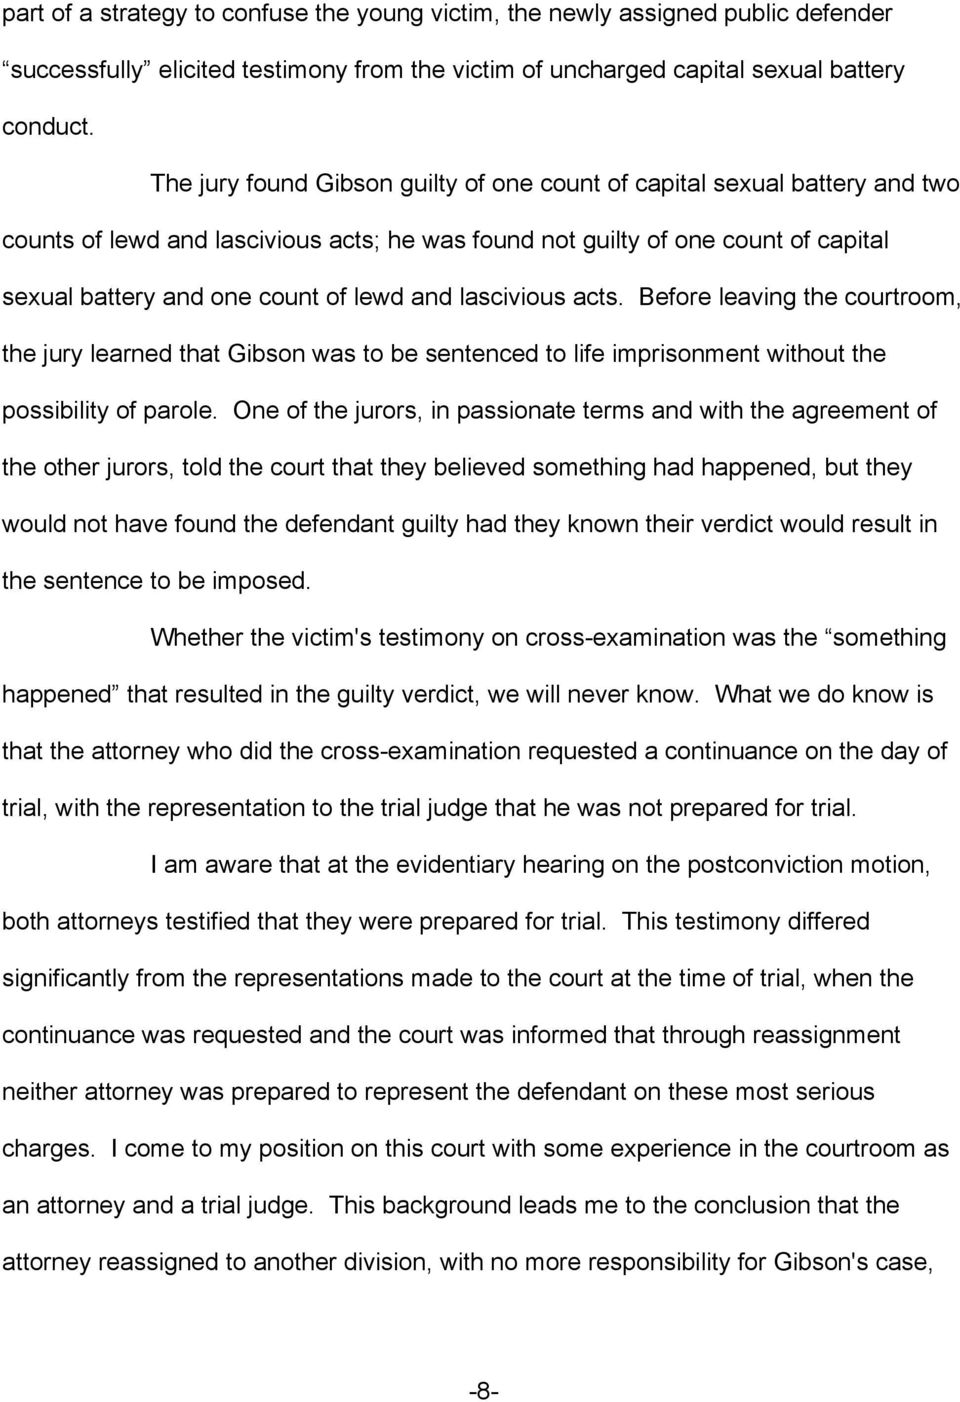 and lascivious acts. Before leaving the courtroom, the jury learned that Gibson was to be sentenced to life imprisonment without the possibility of parole.